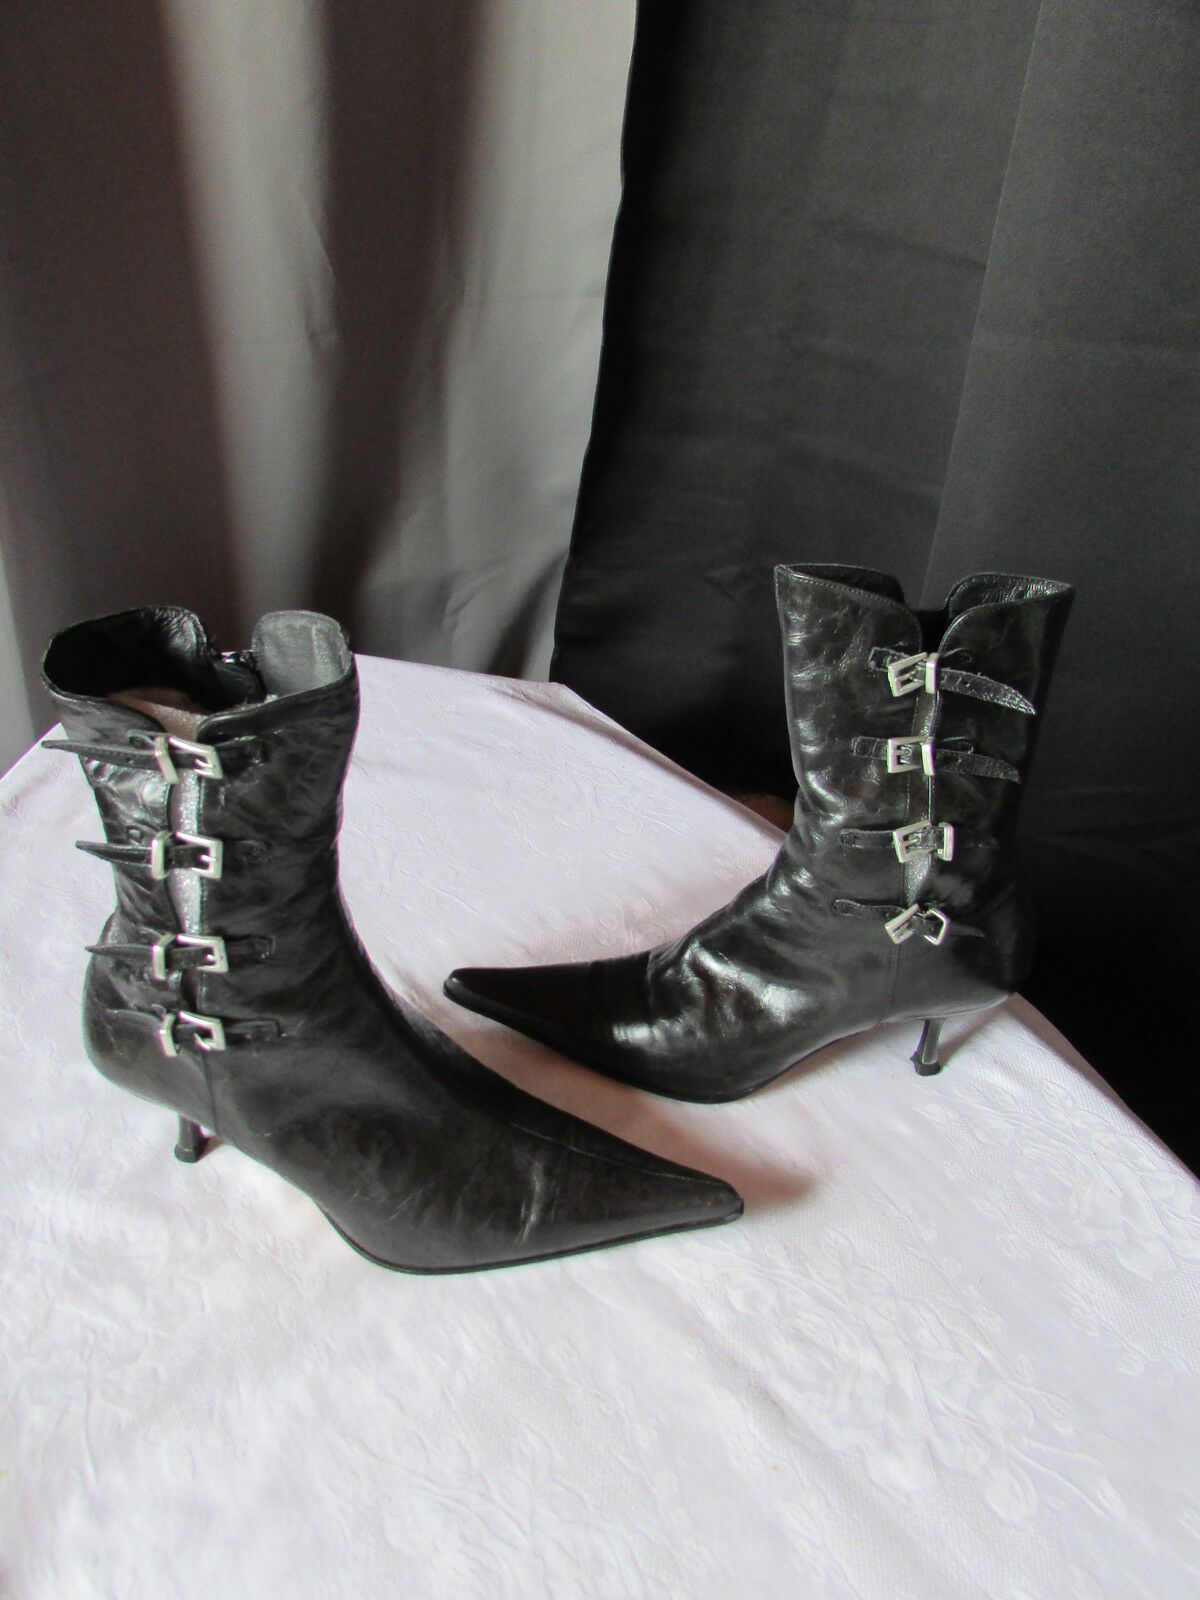 Bottines fluxa cuir noir 36